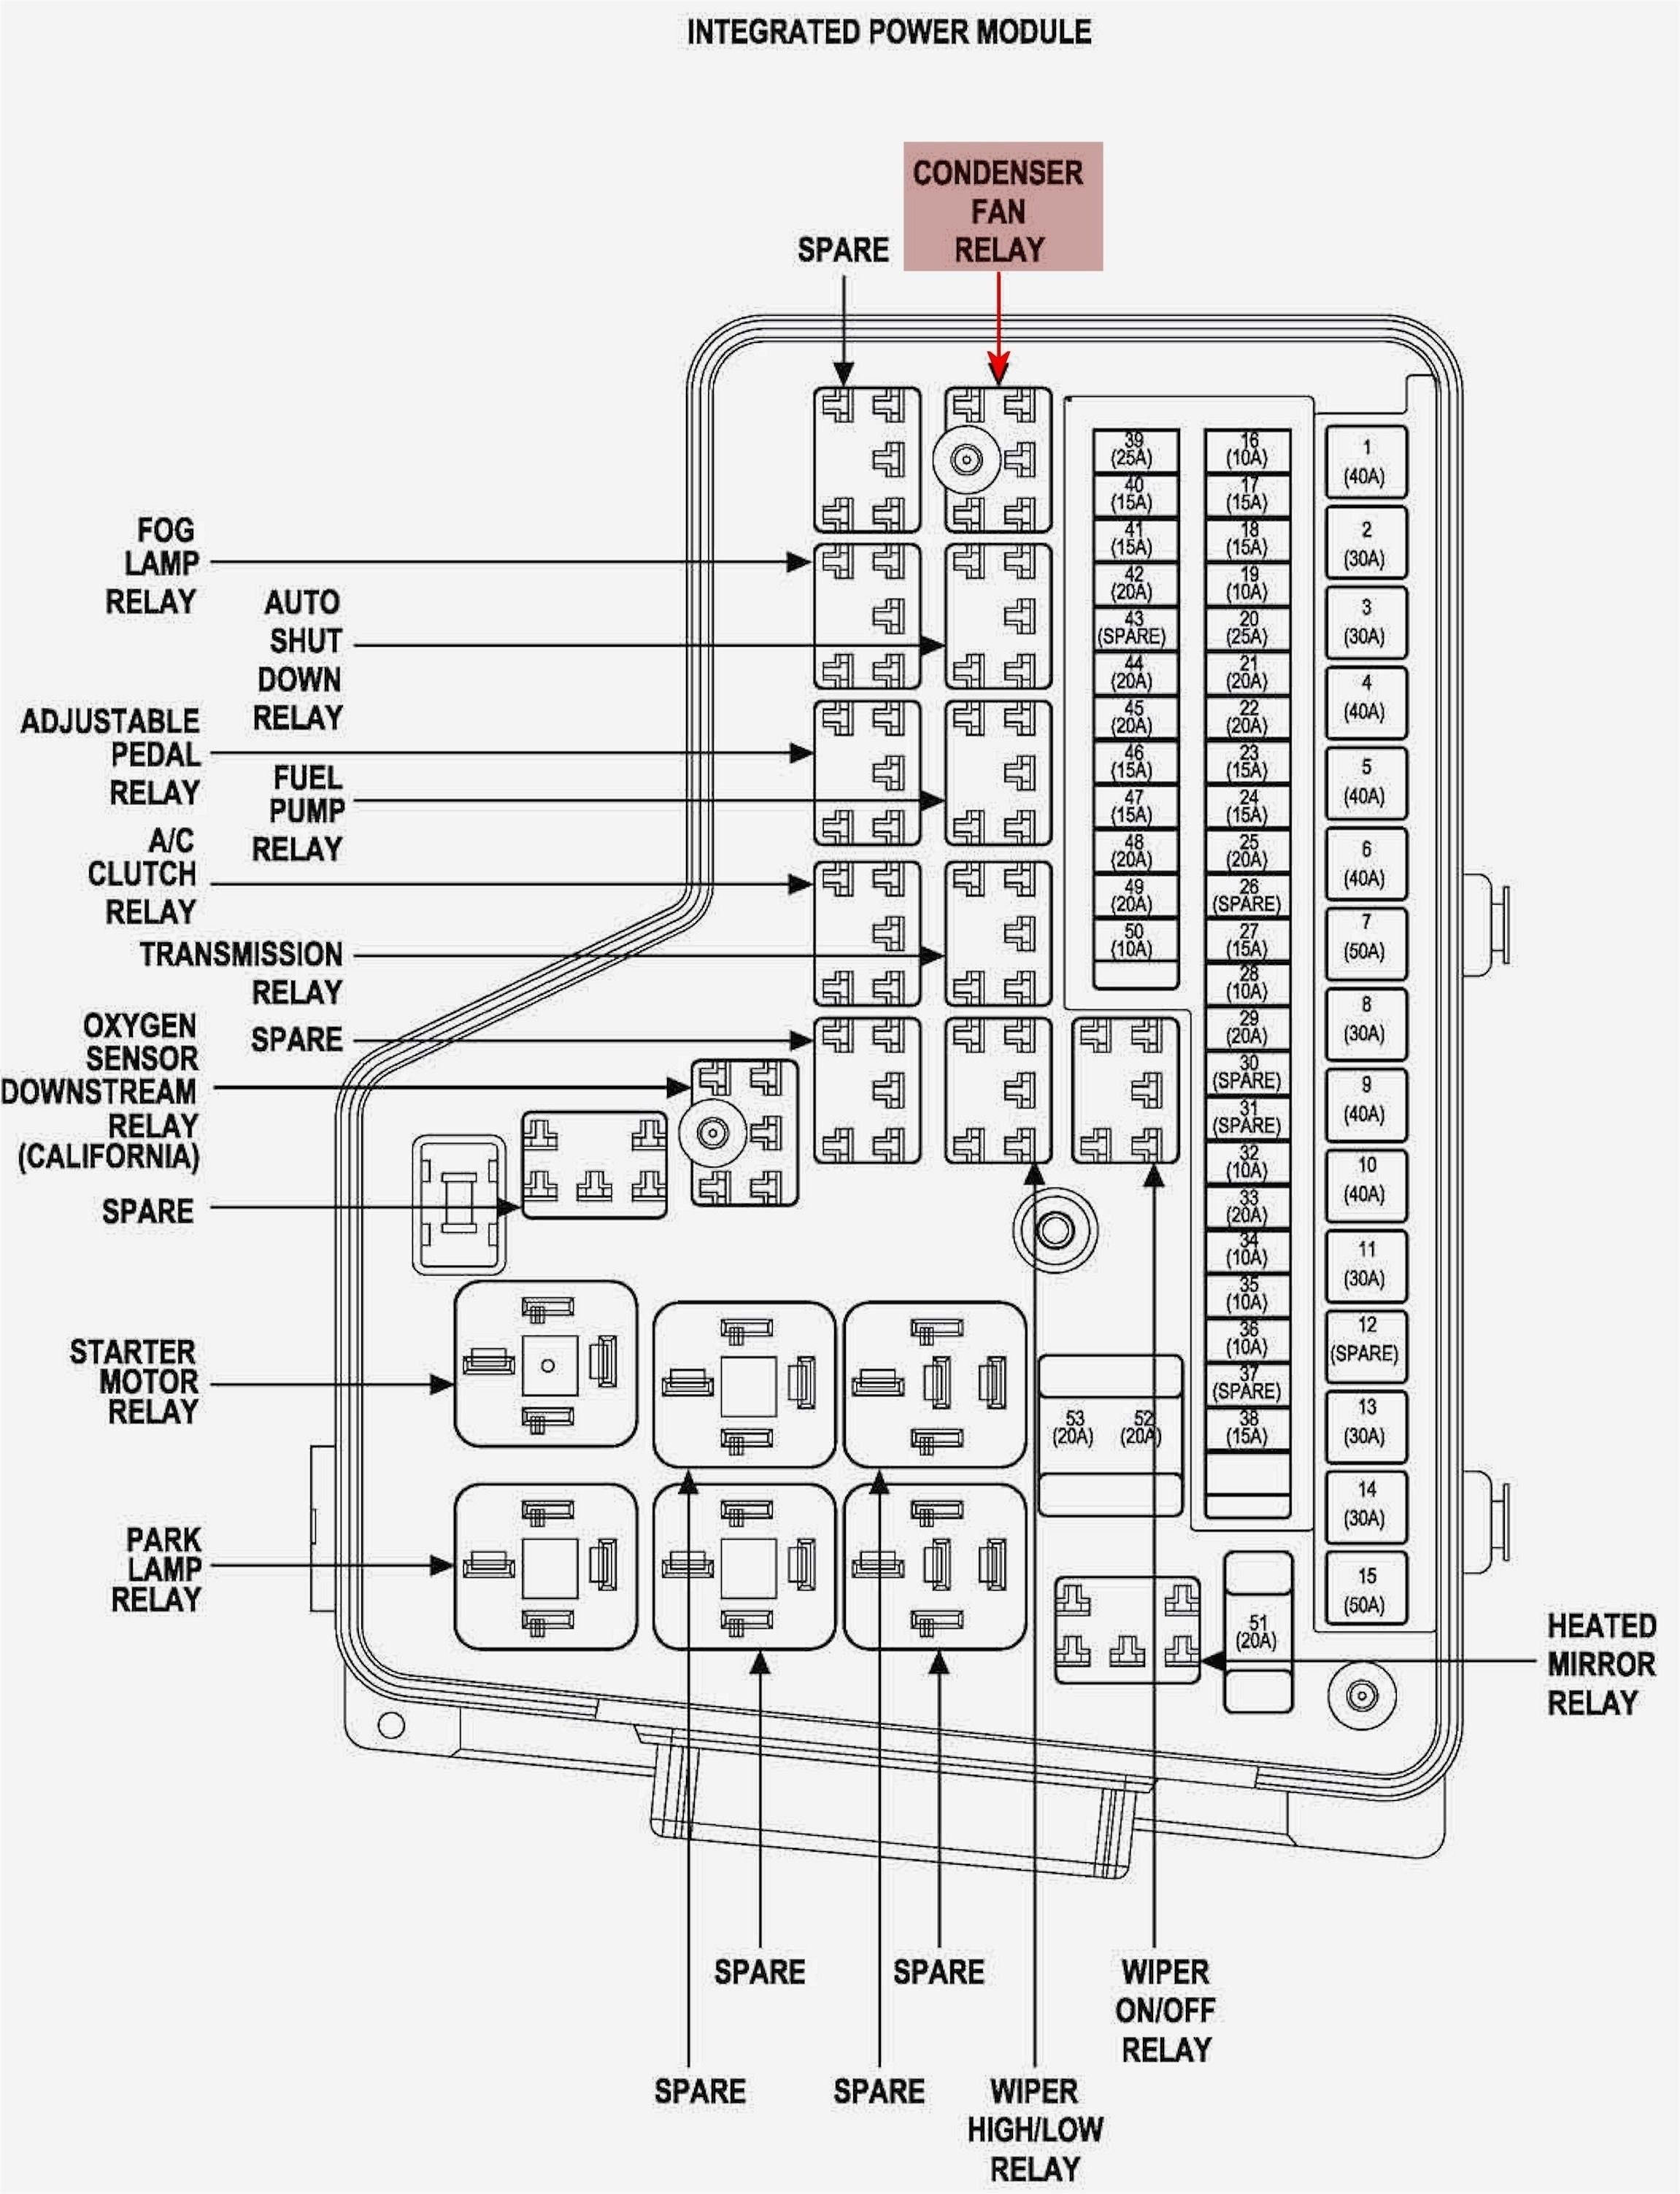 Unique Wiring Diagram 2005 Dodge Ram 1500 Diagram